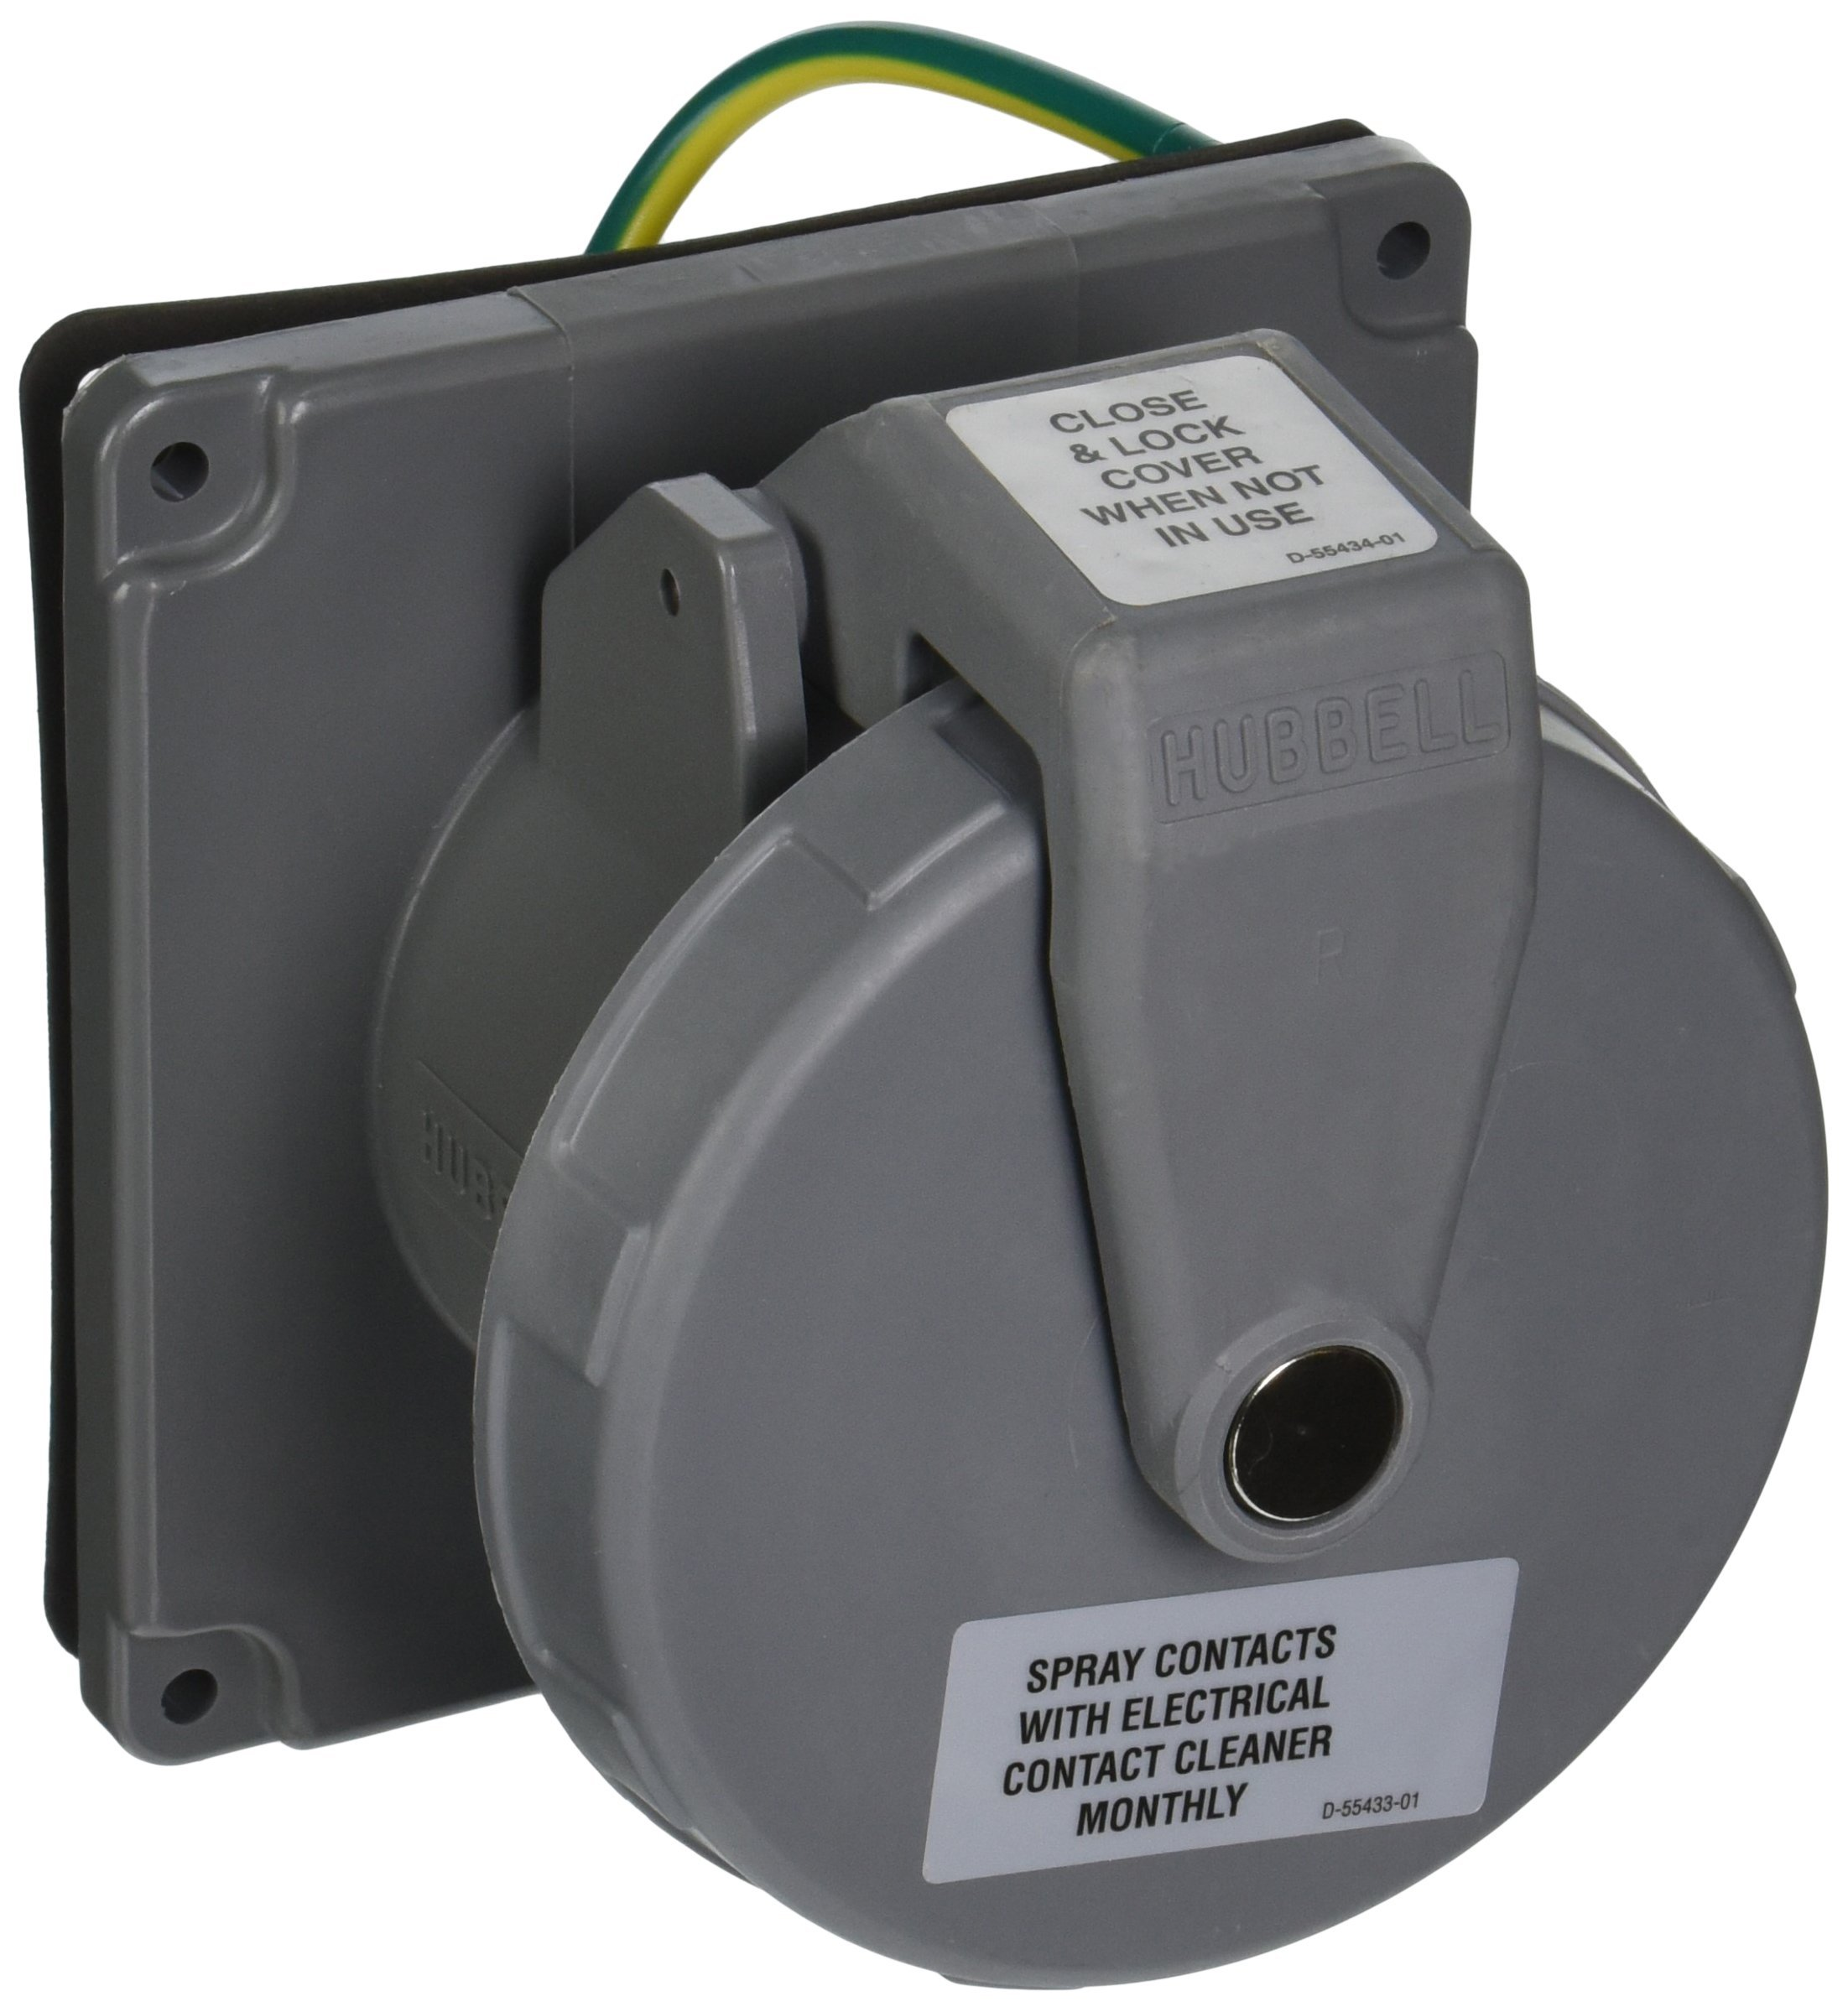 Hubbell Wiring Systems M4100R12 Ship-to-Shore Nylon Dockside Single Receptacle, Gray